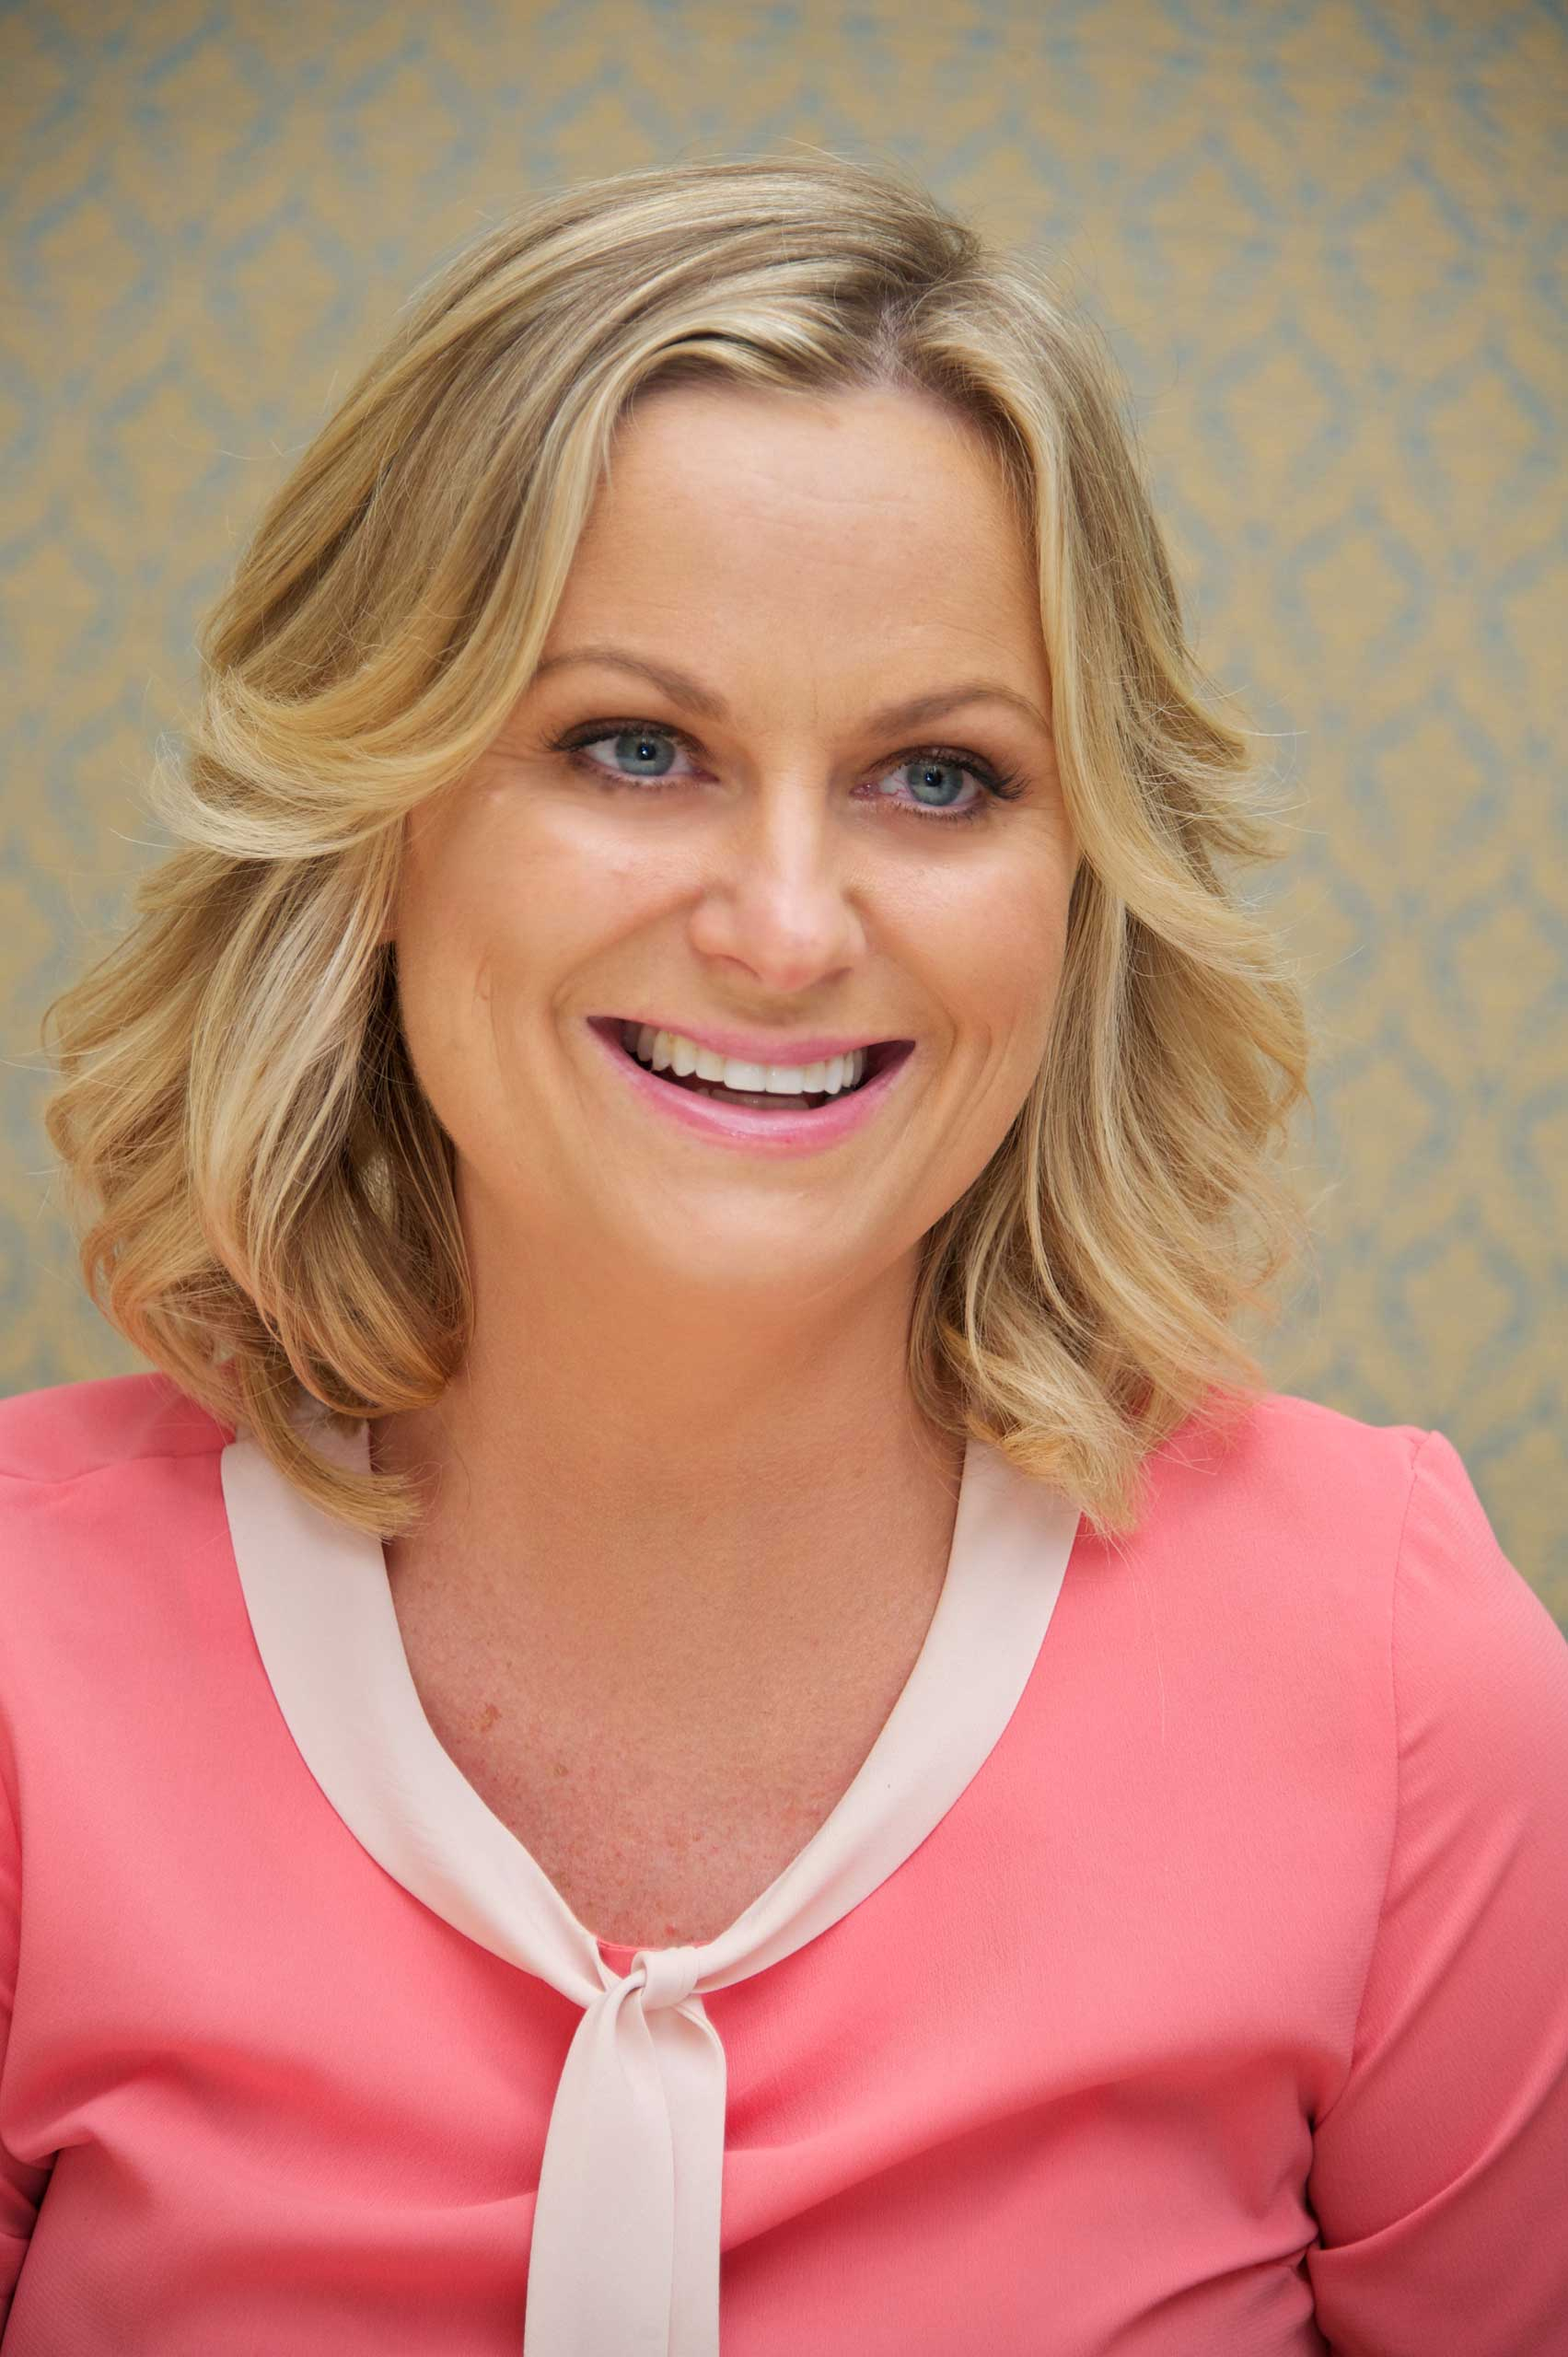 BEVERLY HILLS, CA - OCTOBER 15: Amy Poehler at the  Parks & Recreation  Press Conference at the Four Seasons Hotel on October 15, 2013 in Beverly Hills, California. (Photo by Vera Anderson/WireImage)